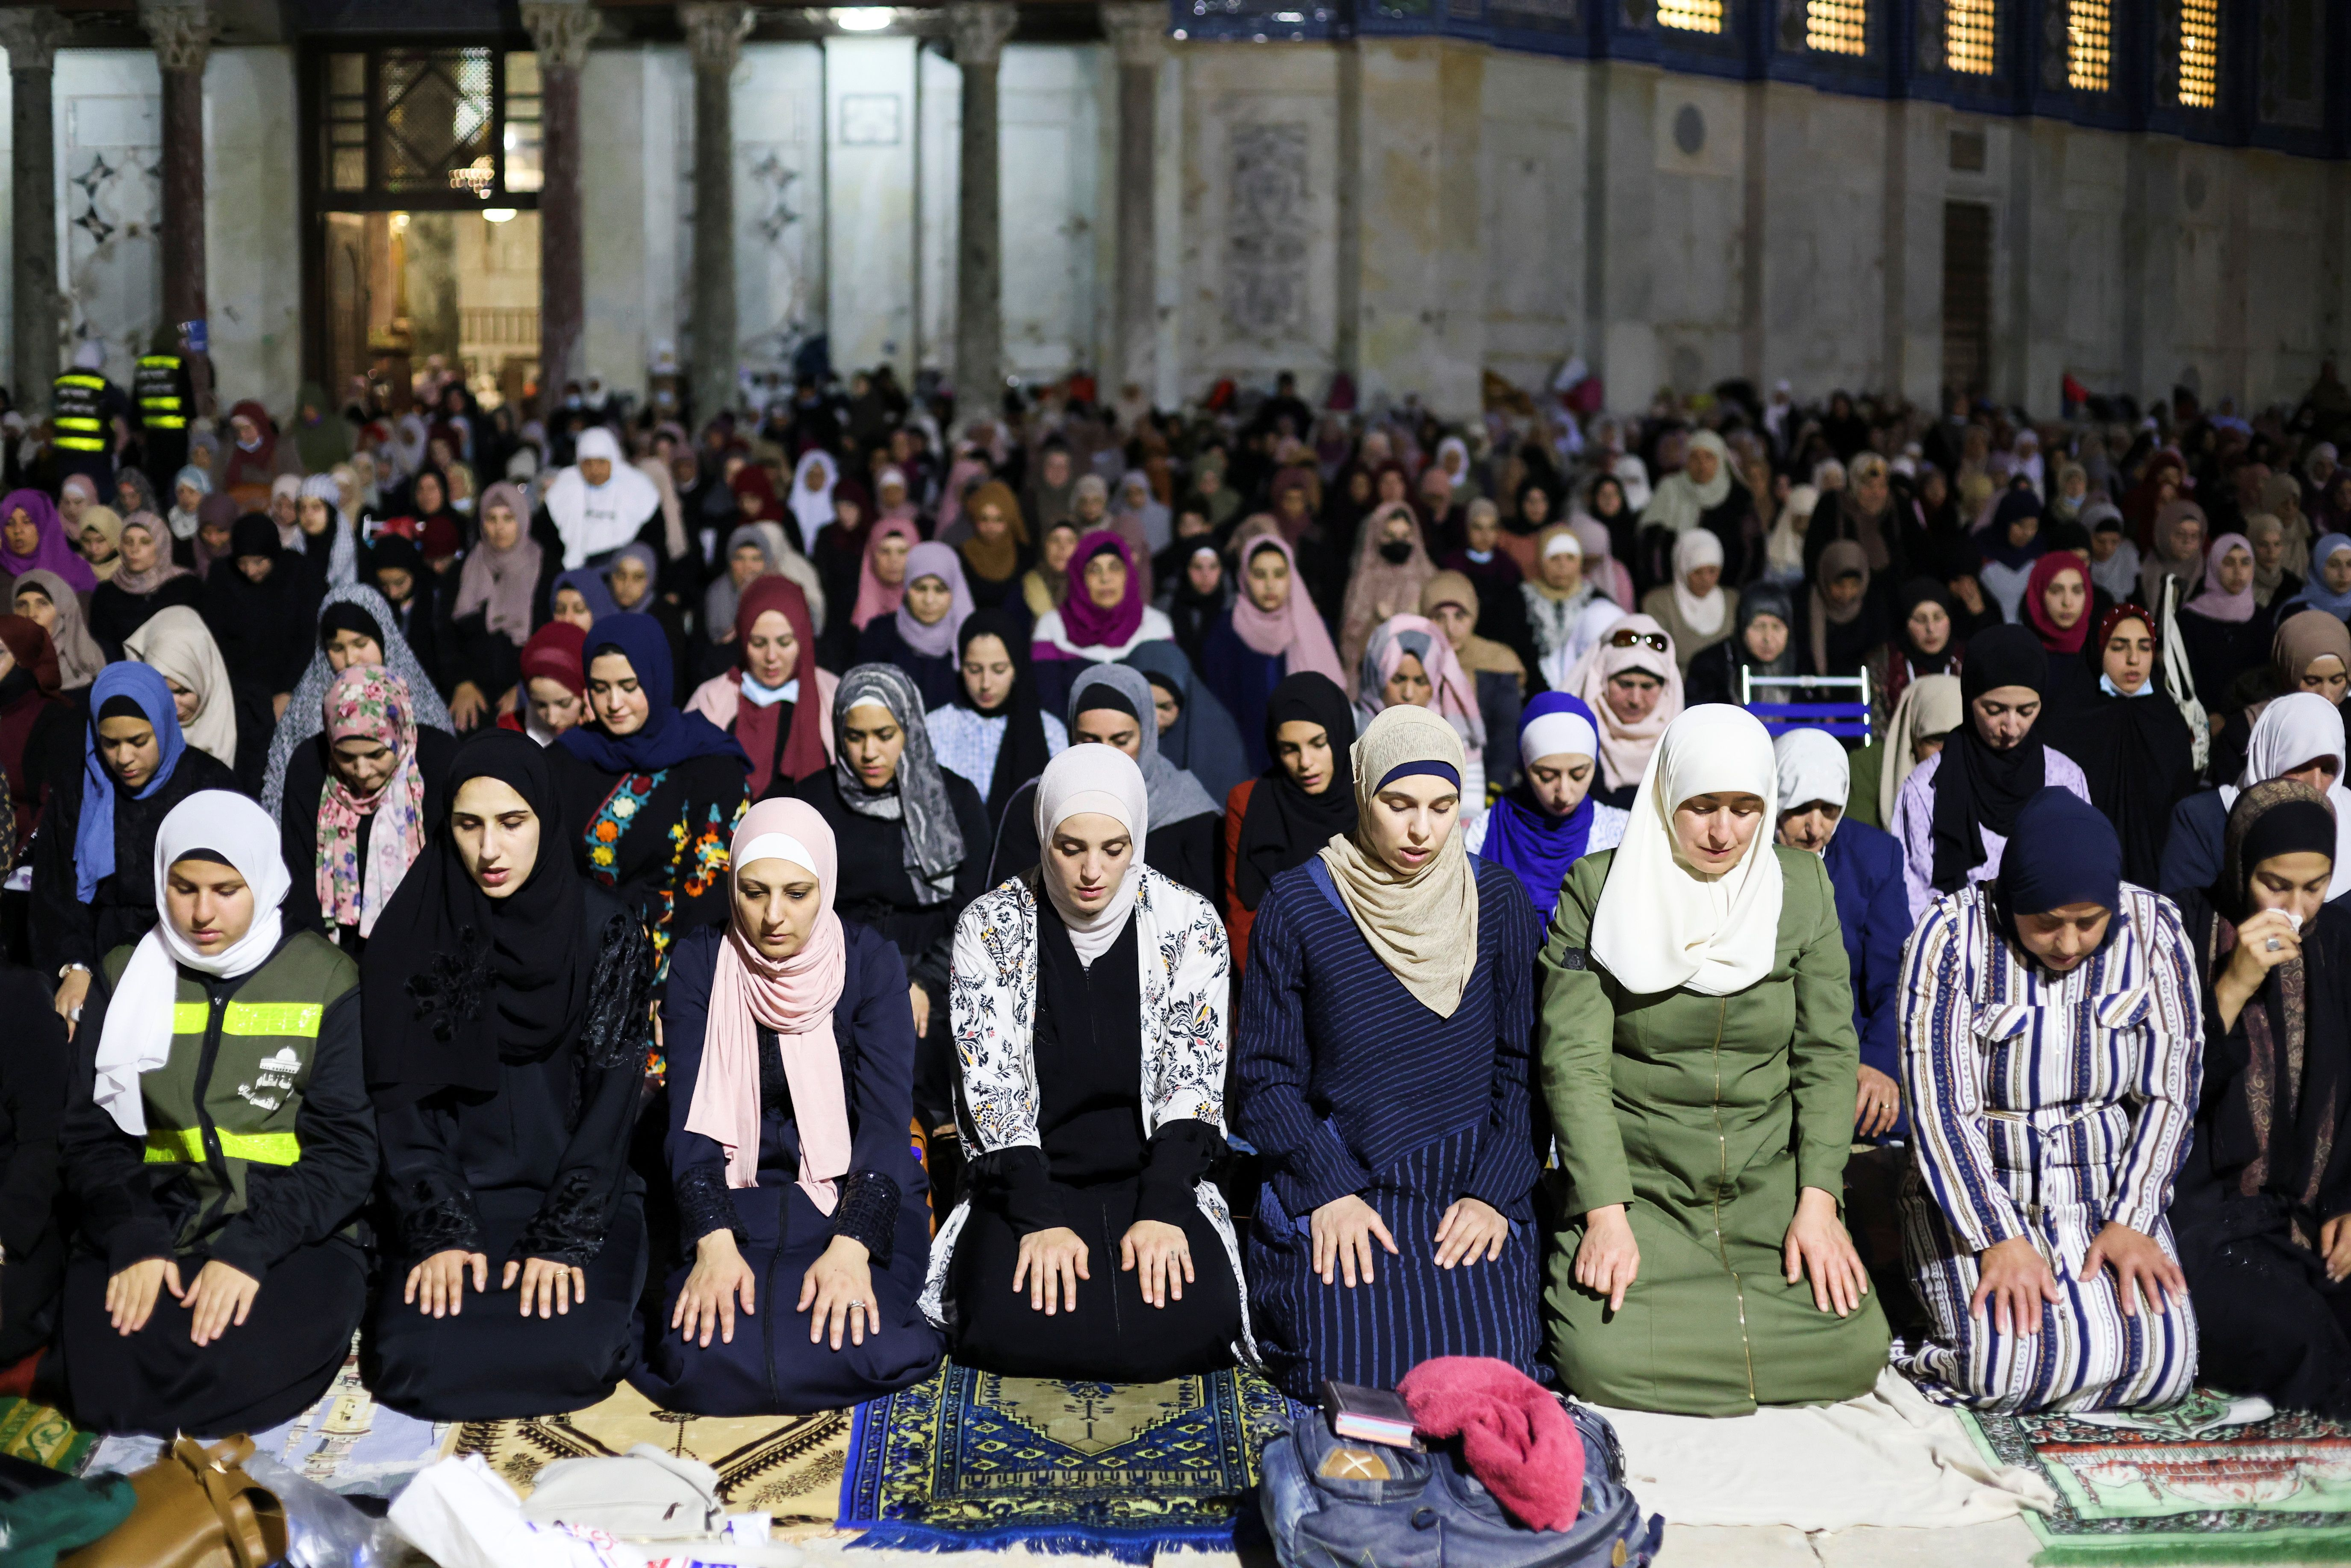 Palestinians pray in the compound that houses Al-Aqsa Mosque in Jerusalem's Old City [Ammar Awad/Reuters]   Al Aqsa Mosque attacked